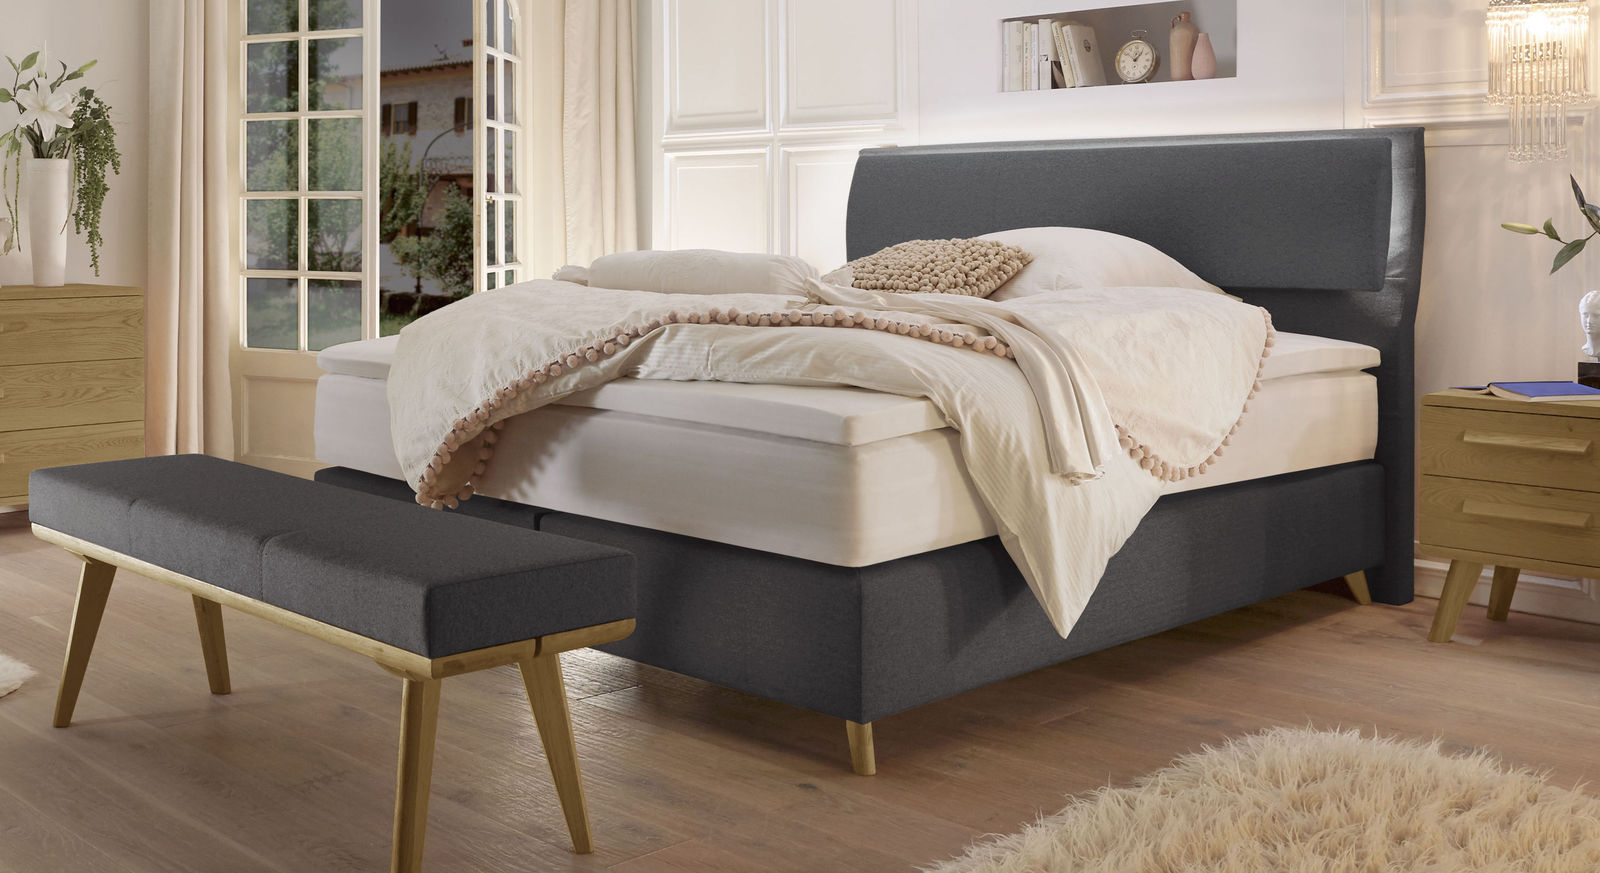 Somera Boxspringbett in anthrazit